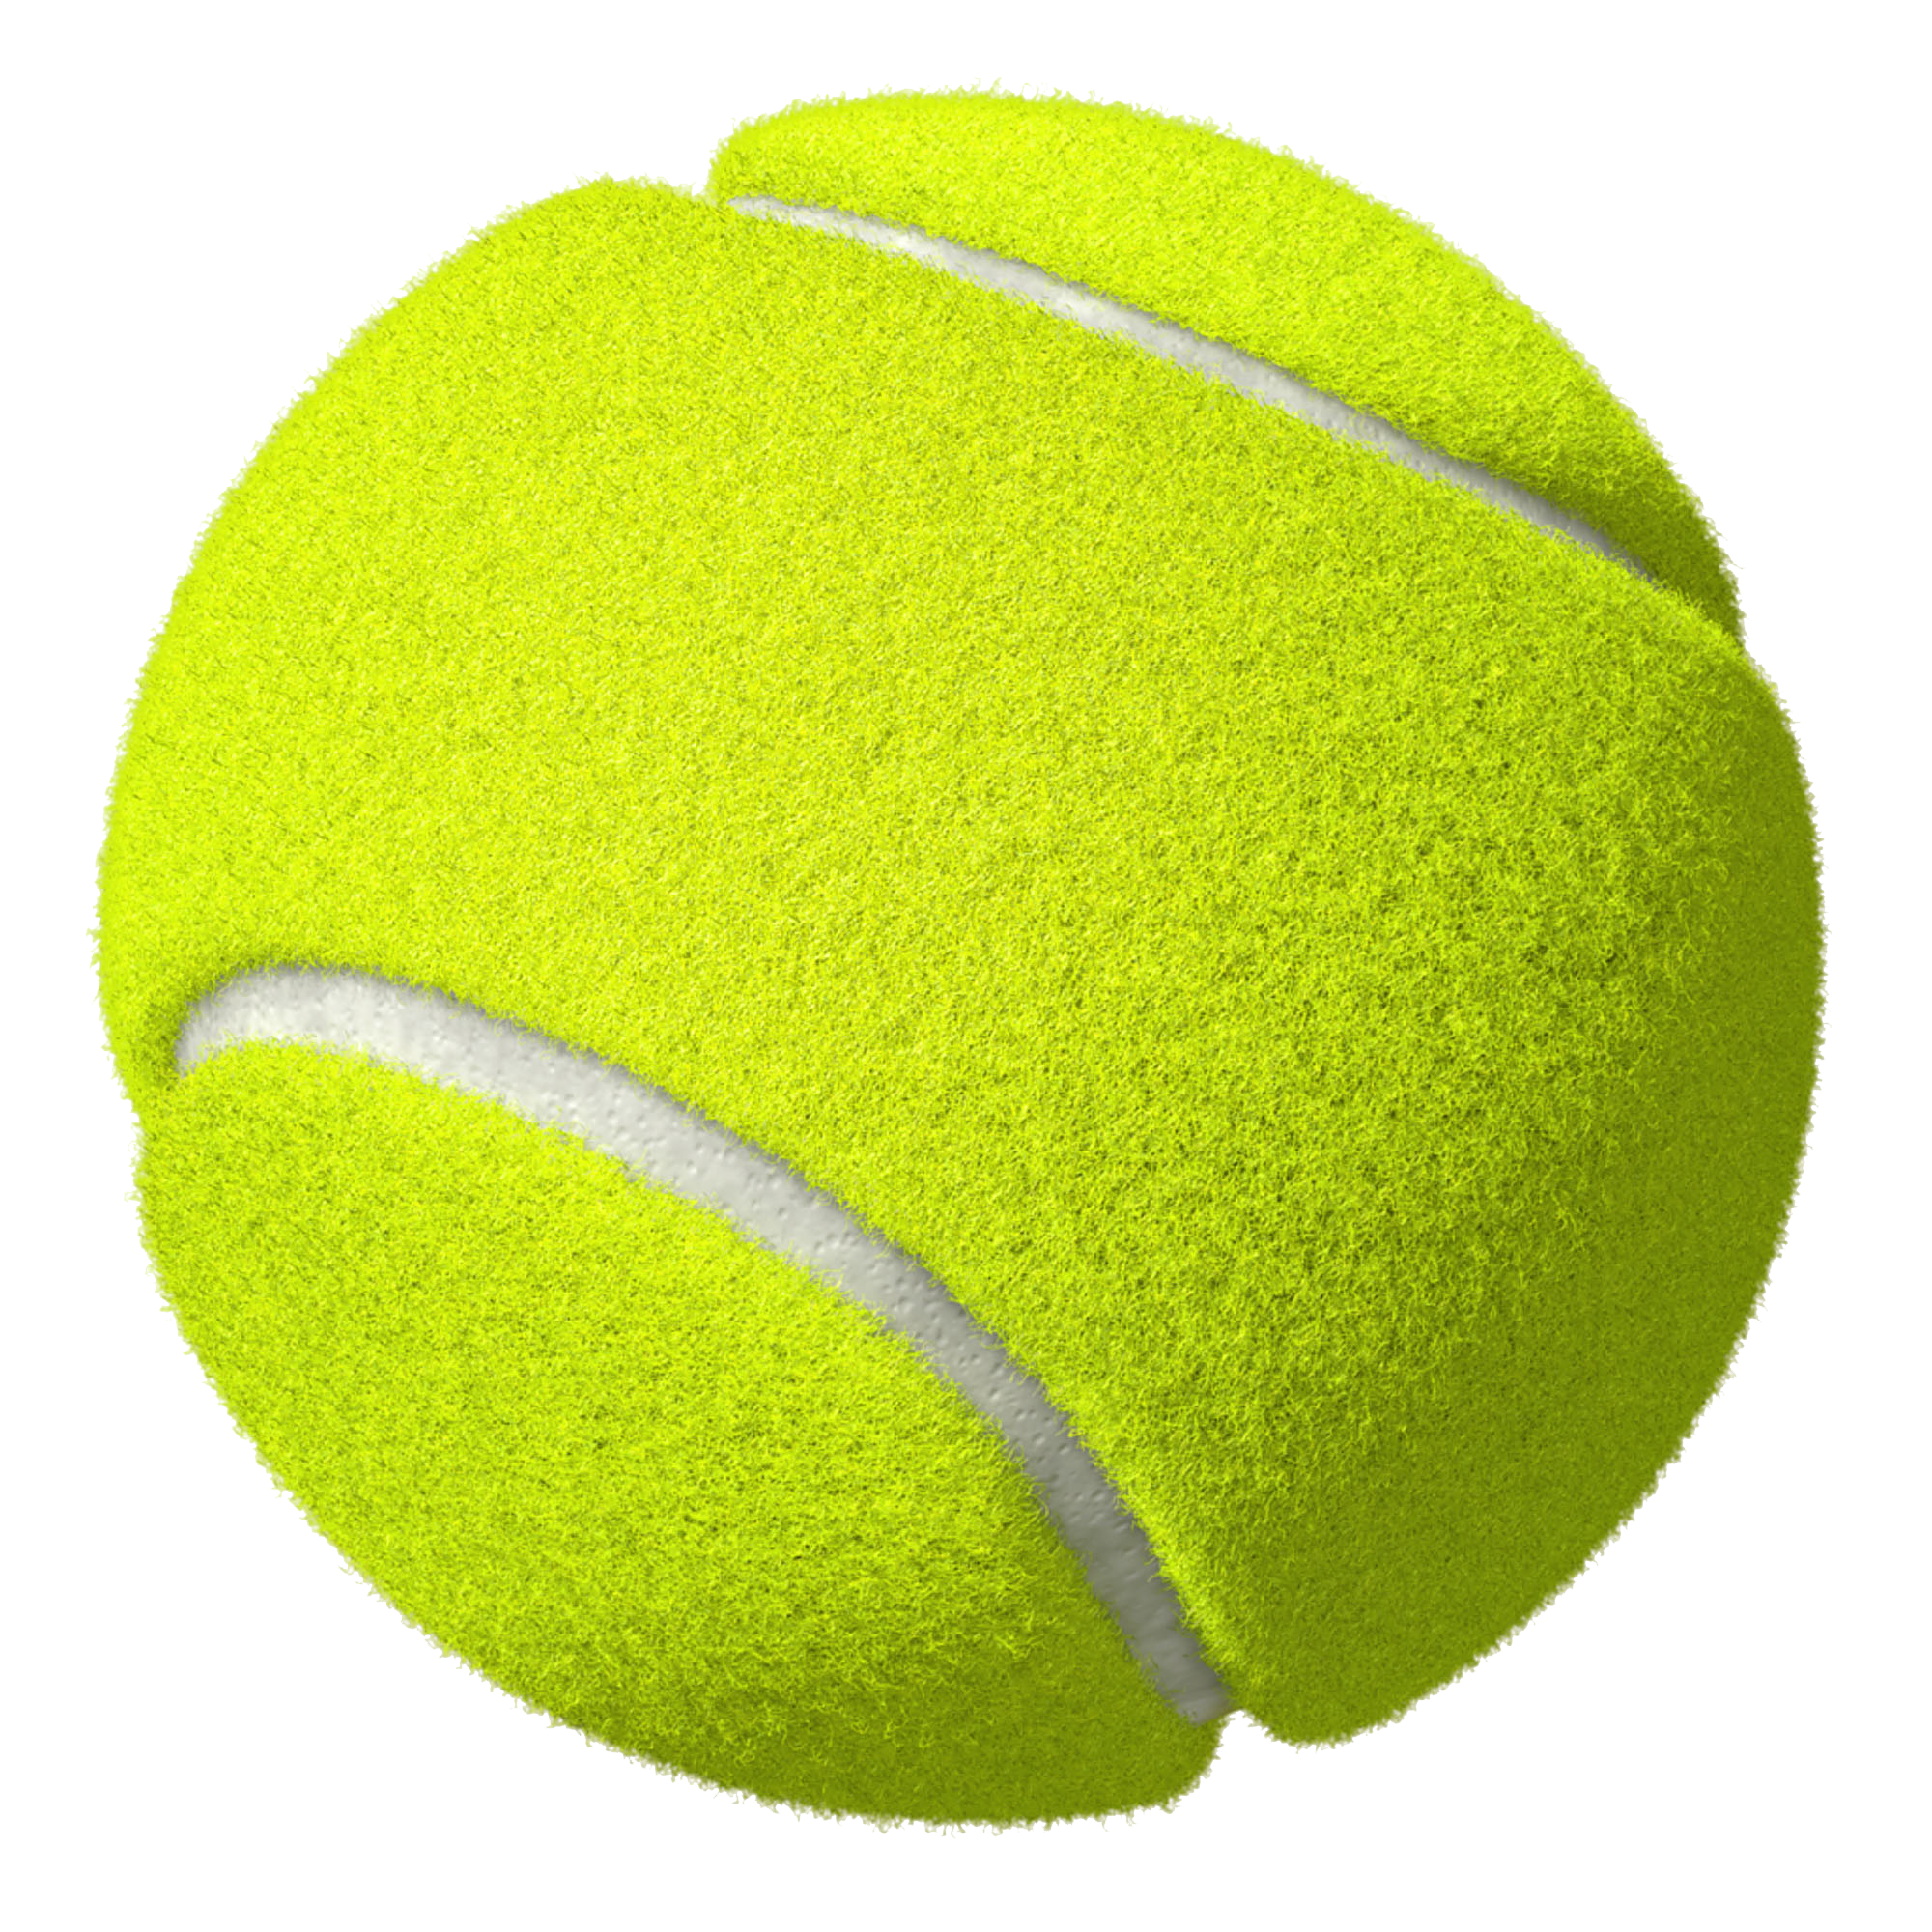 20 Tennis I Ve Played Tennis For 3 Years I Played For Davie Last Year And Hopefully Again This Year I Like Tennis Because Tennis Ball Tennis Tennis Balls